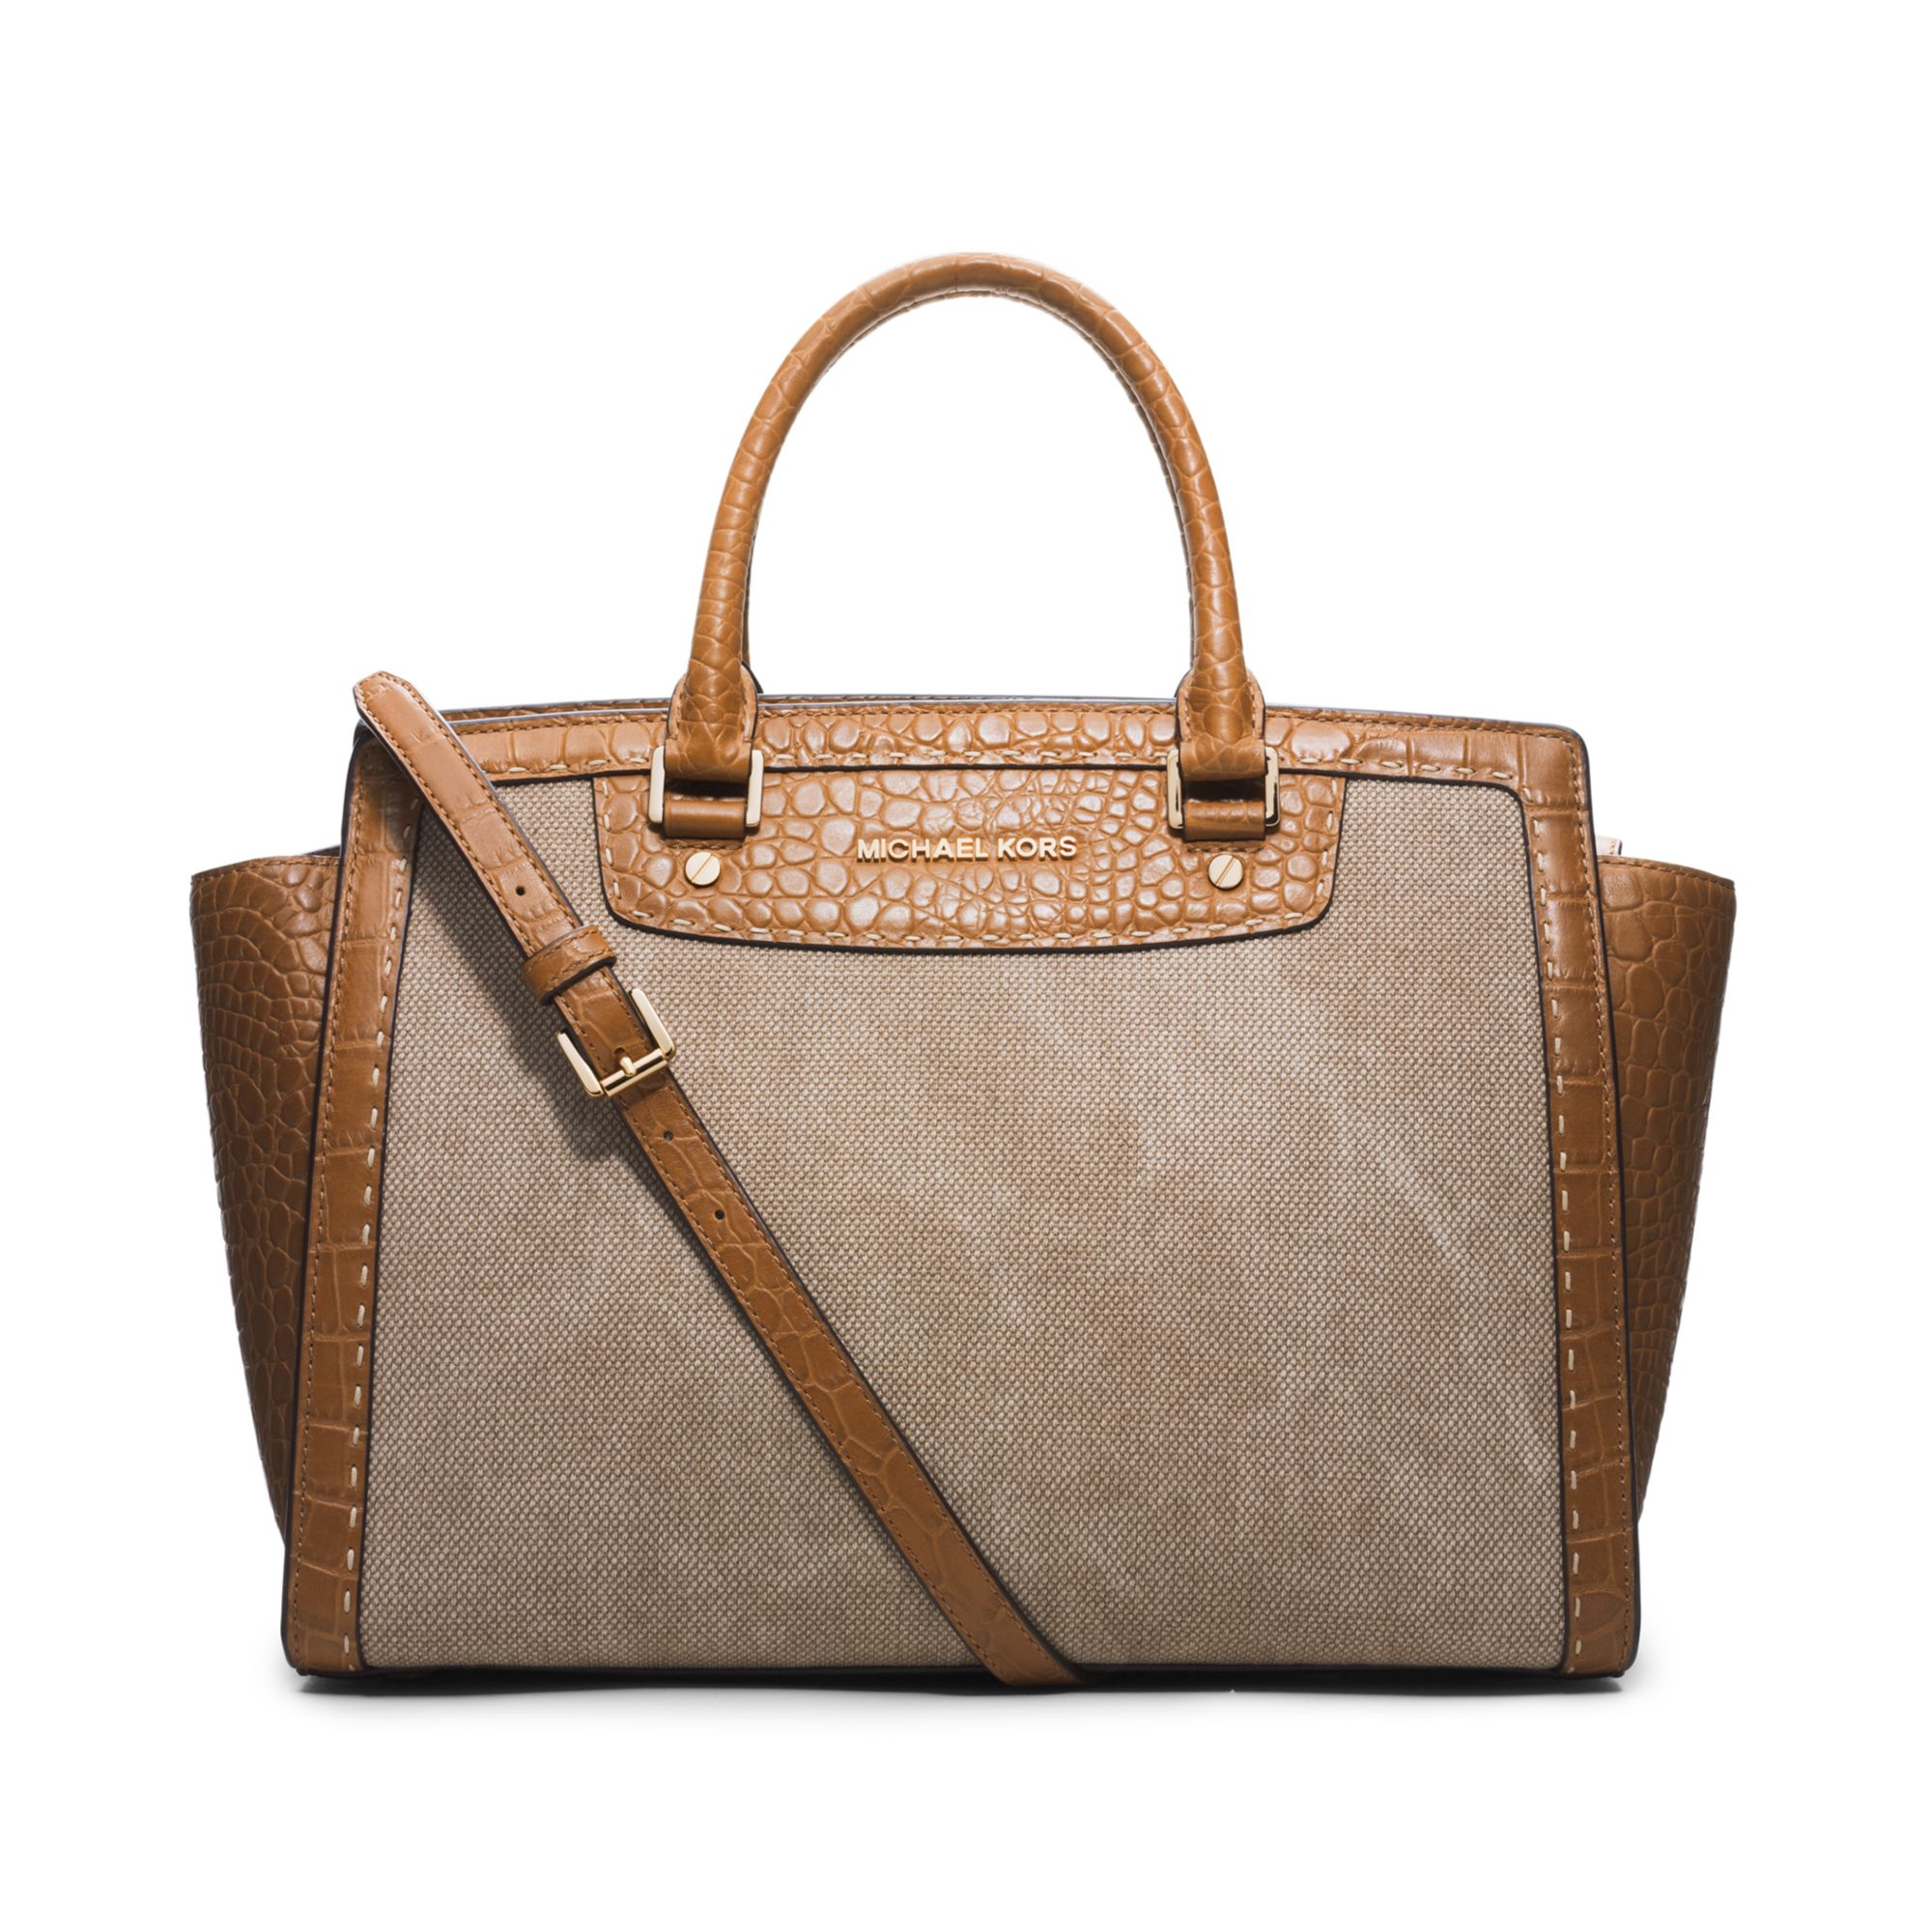 michael kors michael selma pick stitch large satchel in brown hemp lyst. Black Bedroom Furniture Sets. Home Design Ideas